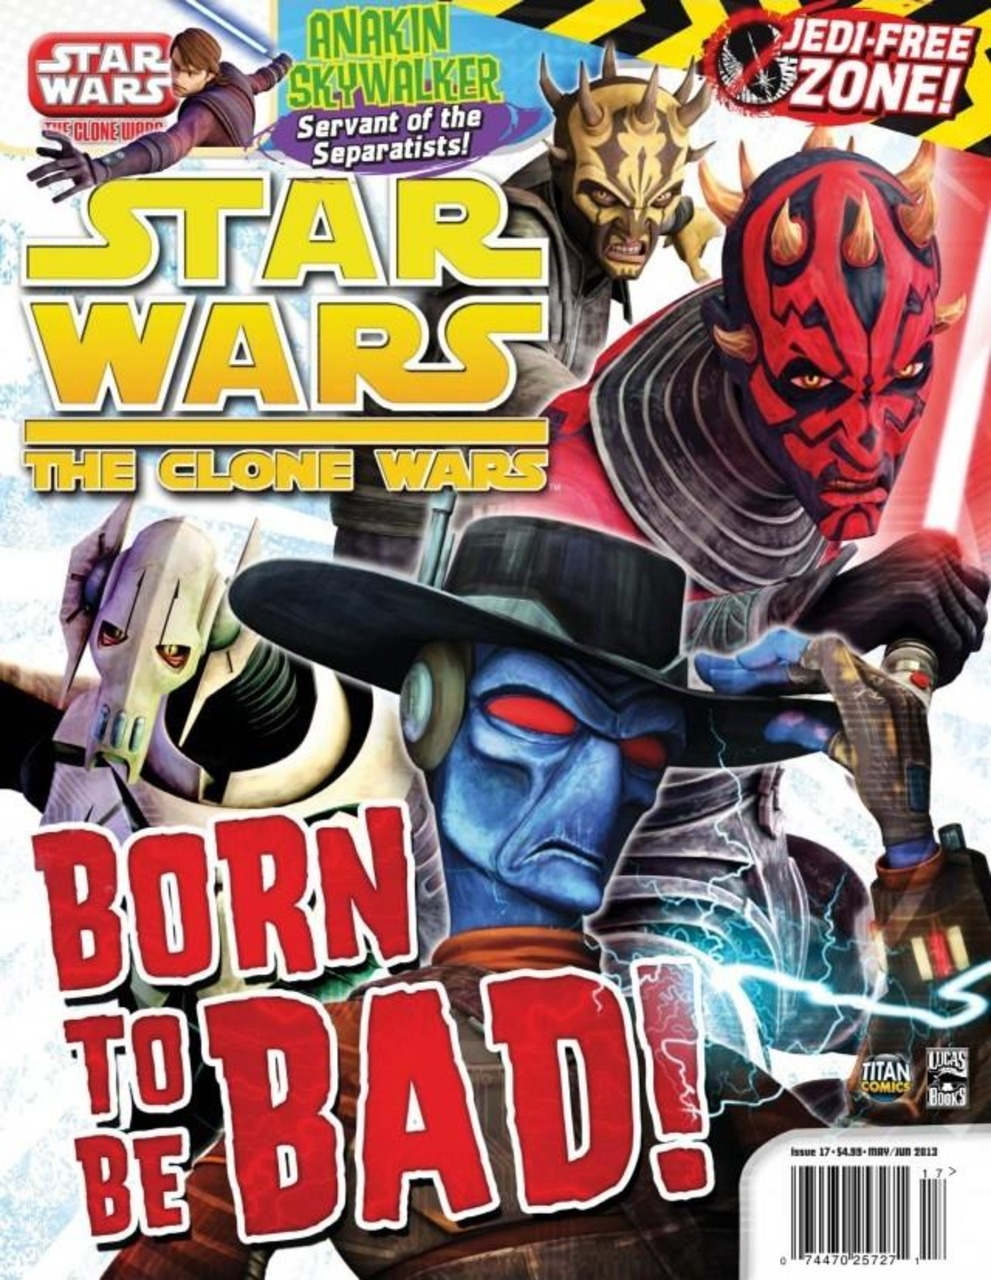 Star Wars The Clone Wars: Downhill